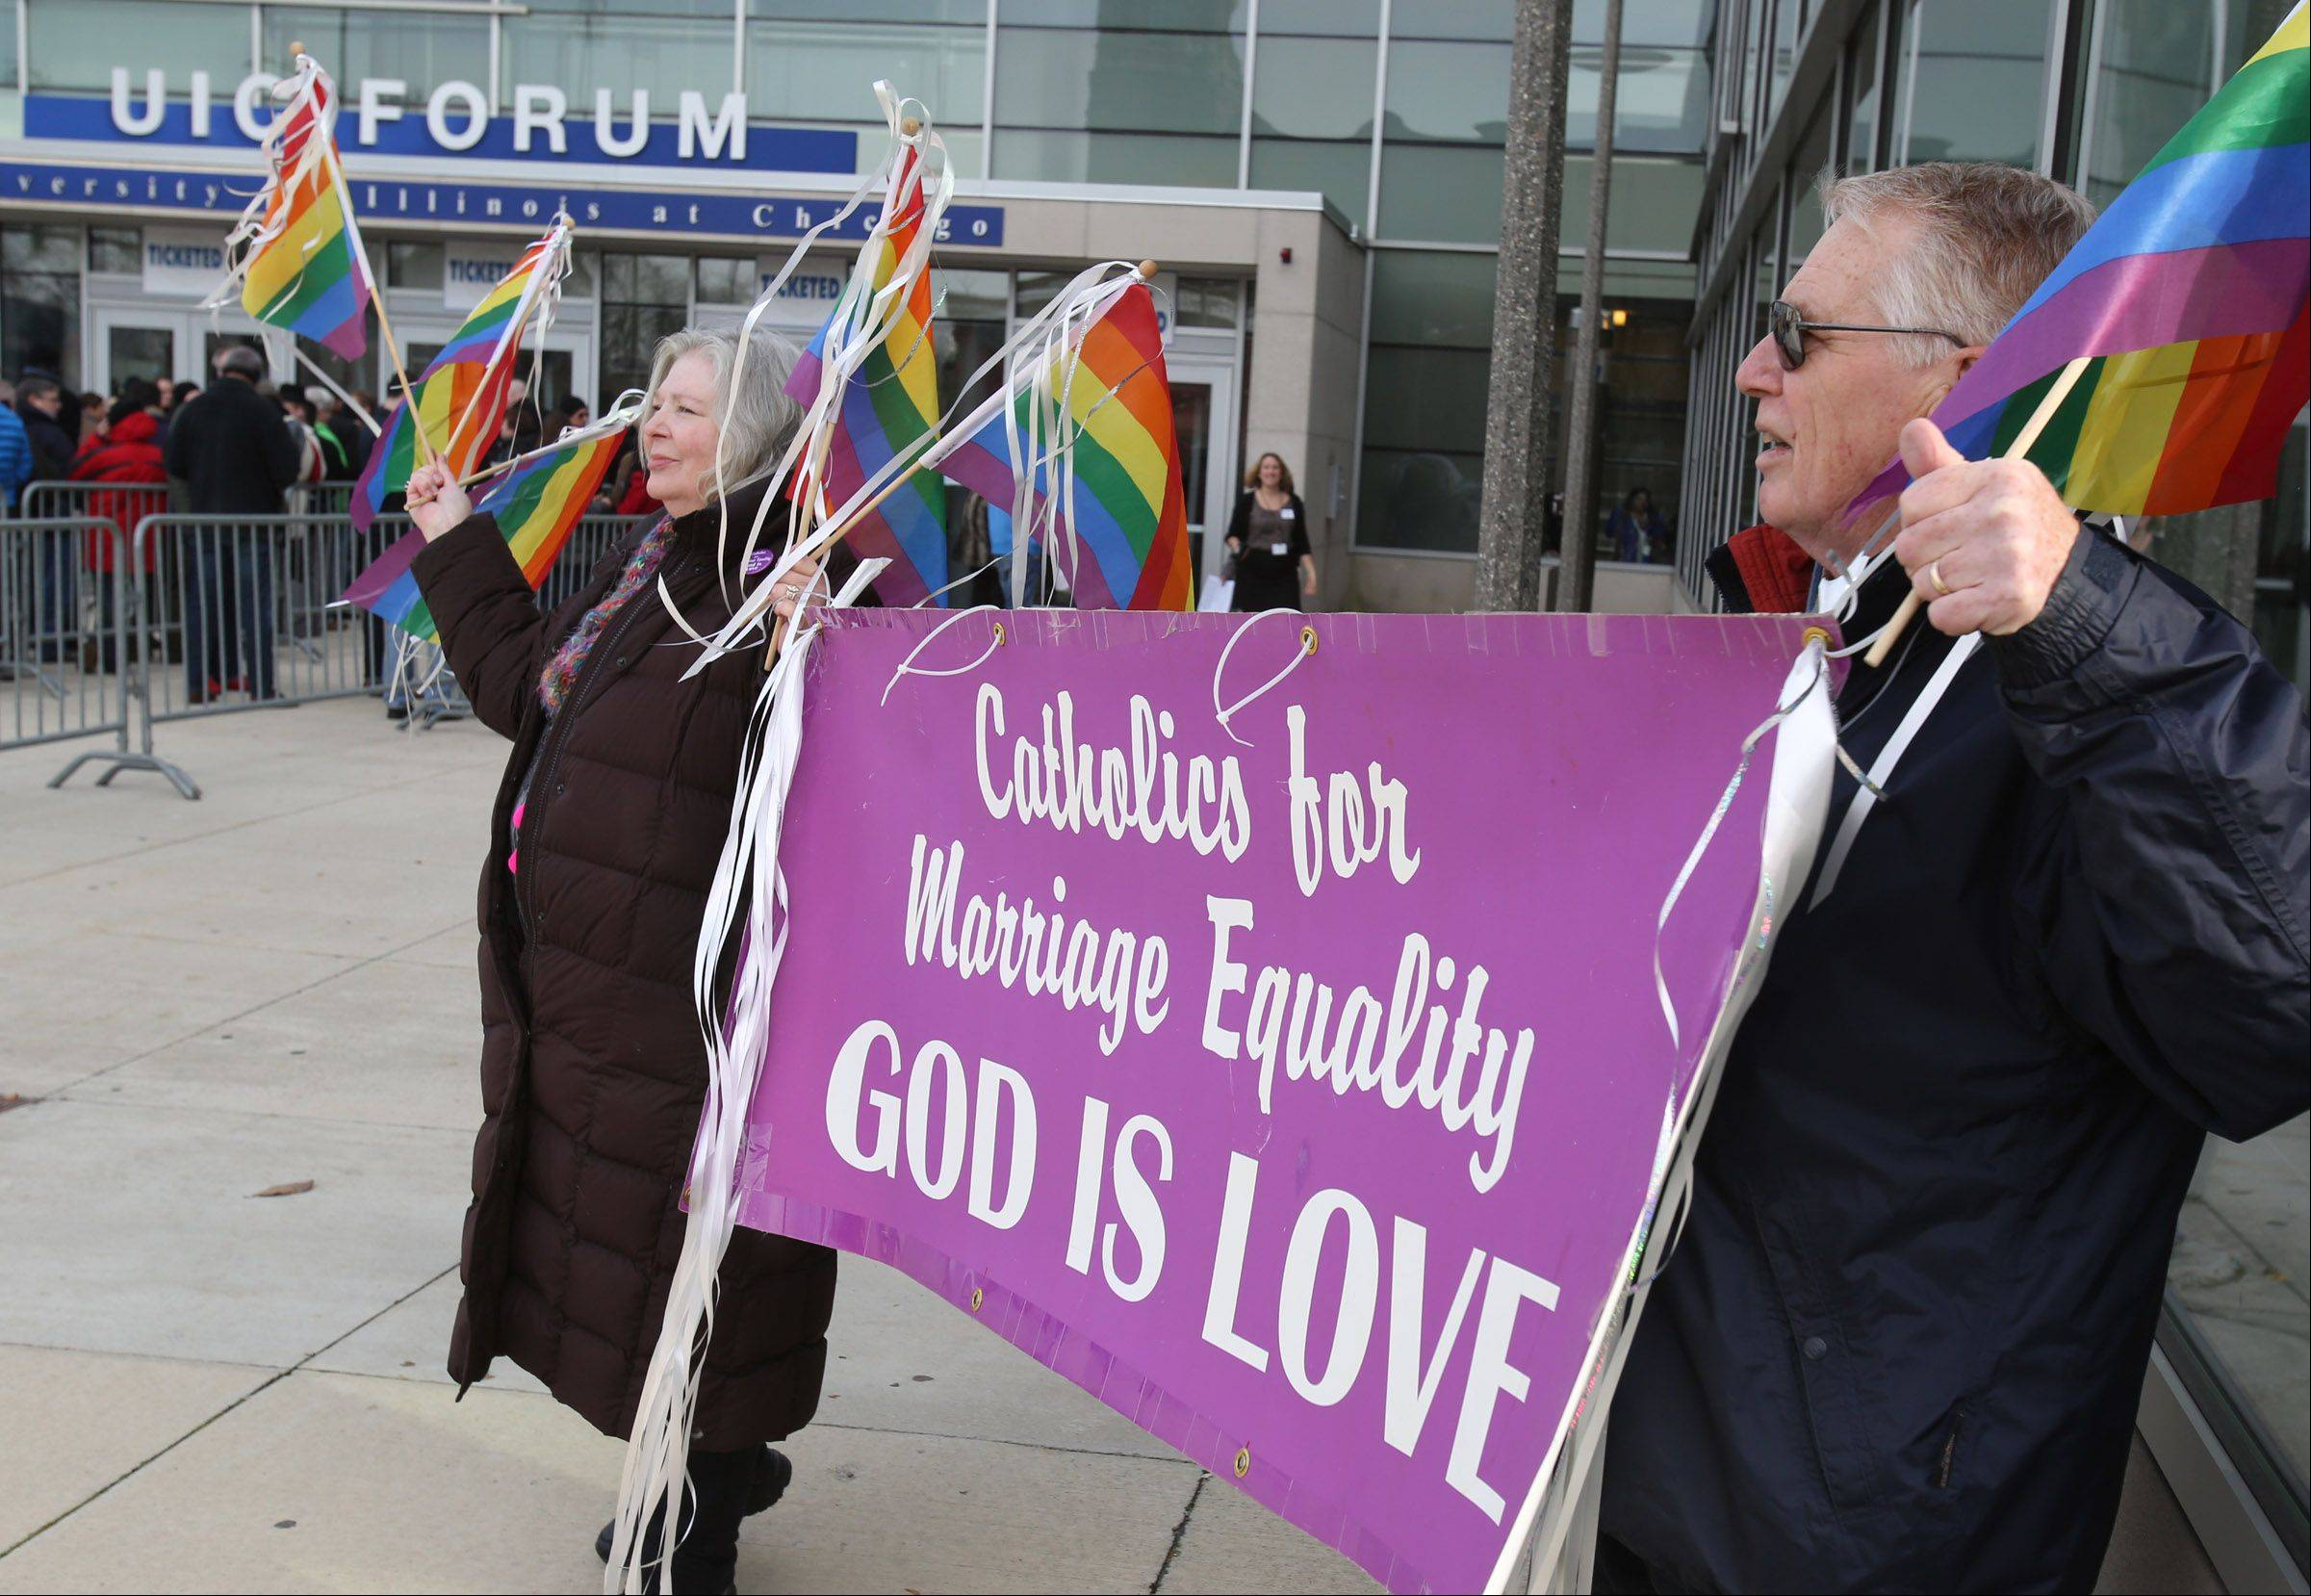 Barbara Marian and Jerry Powers, both of Harvard, hold a sign on behalf of Catholics for Marriage Equality outside the University of Illinois at Chicago Forum, where Gov. Pat Quinn signed a bill legalizing same-sex marriage.